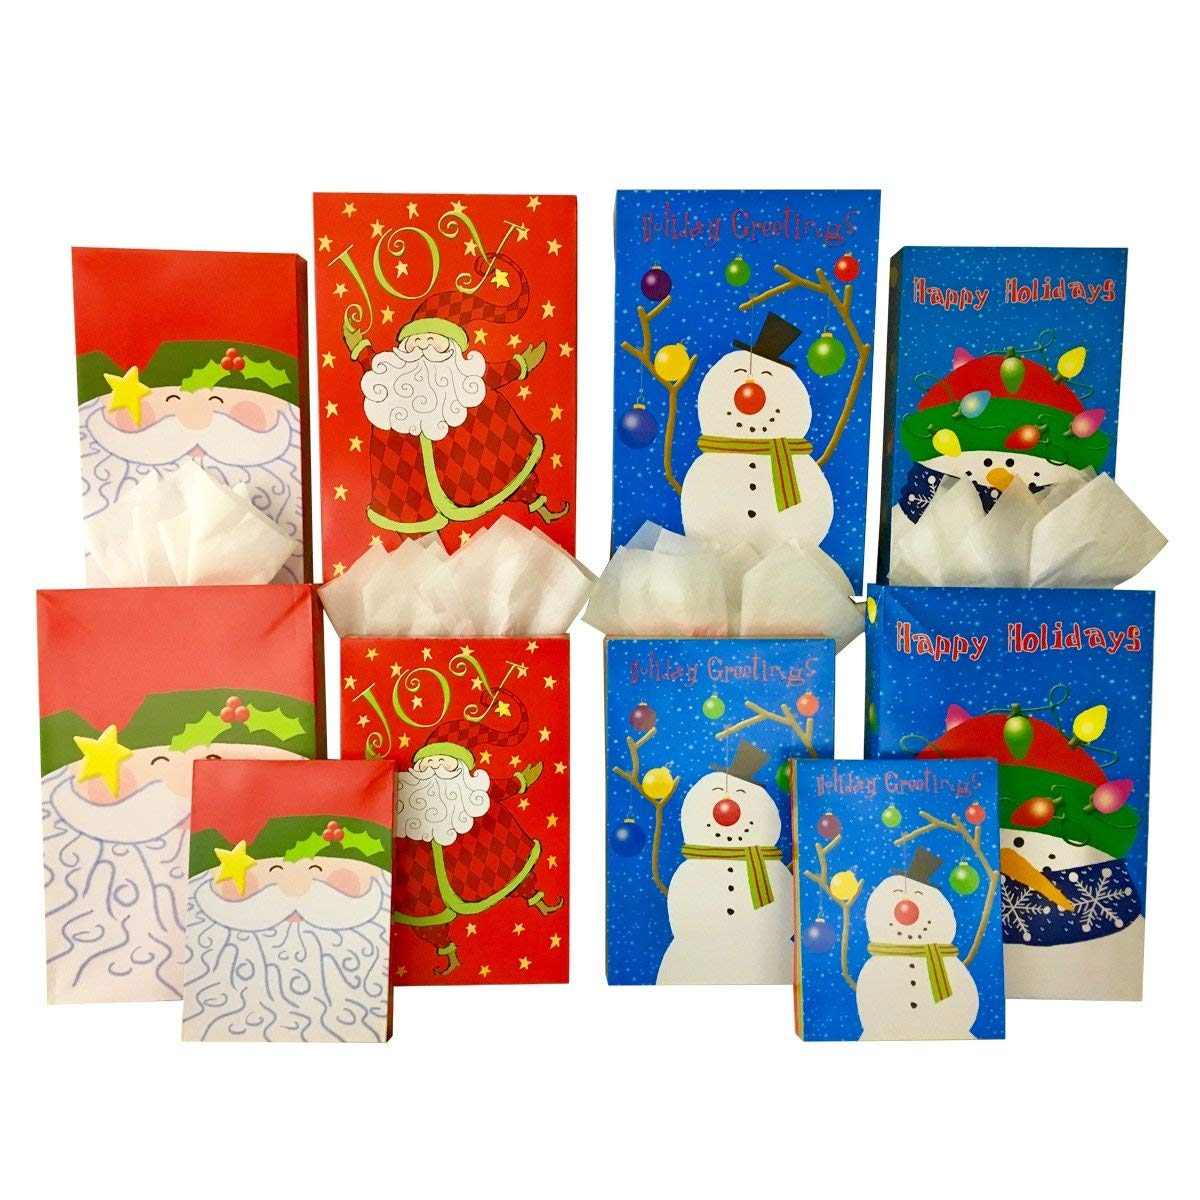 Set of 10 Christmas Gift Boxes + Tissue Paper, 2 Robe Box, 3 Shirt Box, 5 Lingerie Box (10 Gift Boxes, Santa Claus and Friends)